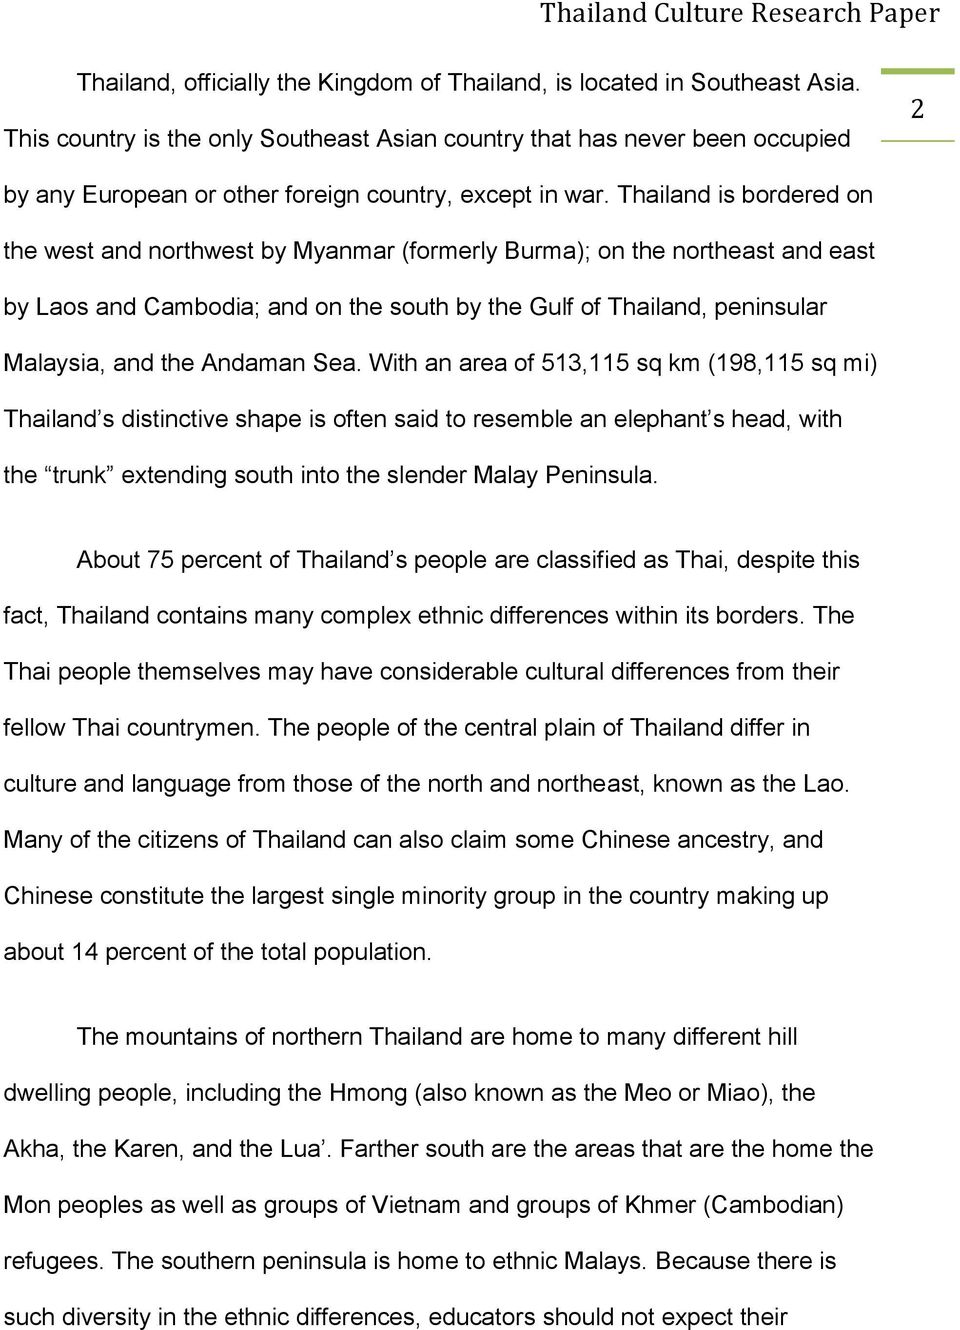 Thailand is bordered on the west and northwest by Myanmar (formerly Burma); on the northeast and east by Laos and Cambodia; and on the south by the Gulf of Thailand, peninsular Malaysia, and the